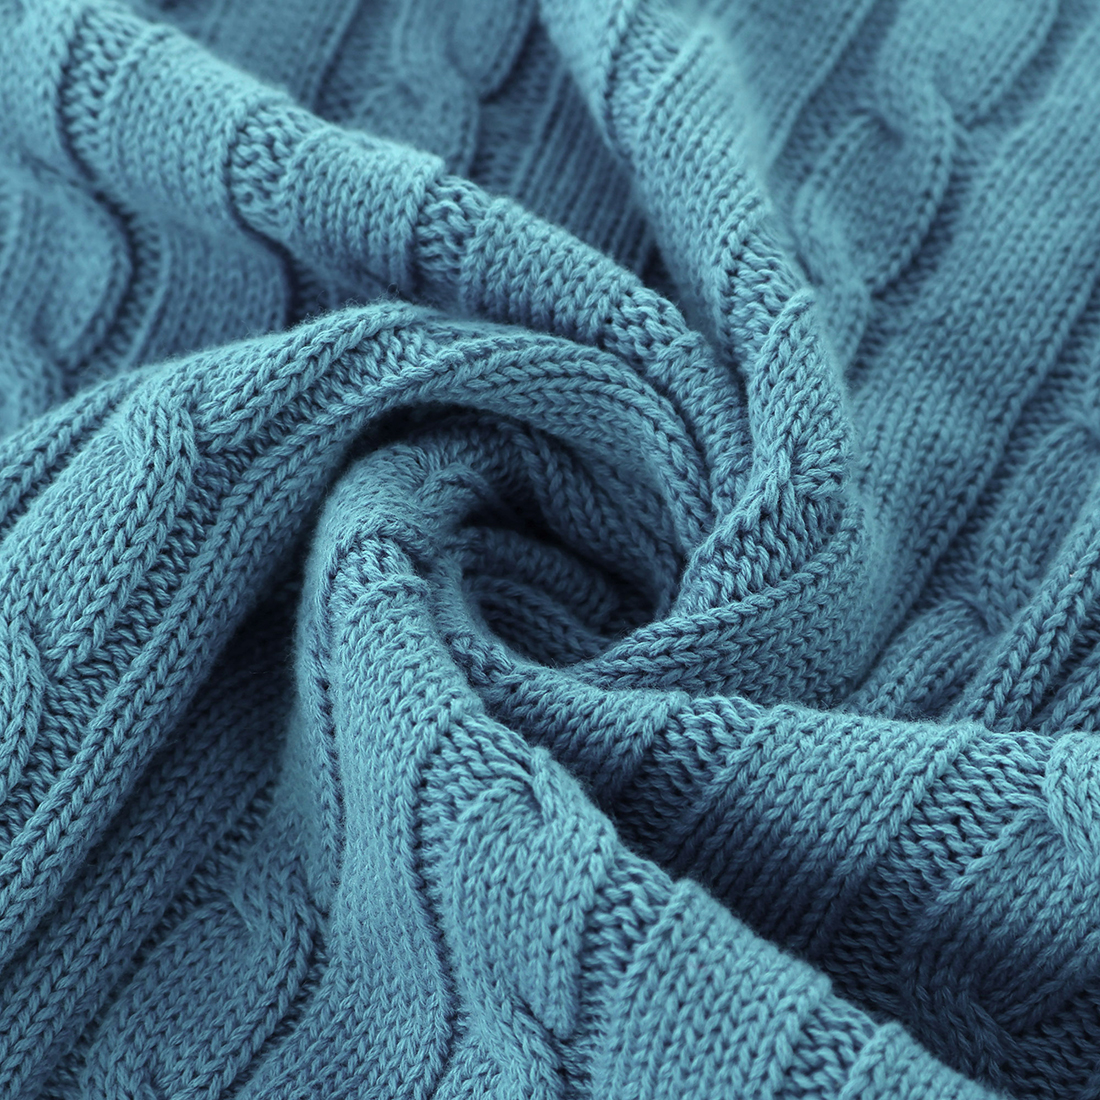 "Cotton Blanket Soft Warm Cable Knit Throw Home Bedding Blanket Teal Blue 50""x60"" - image 6 de 8"